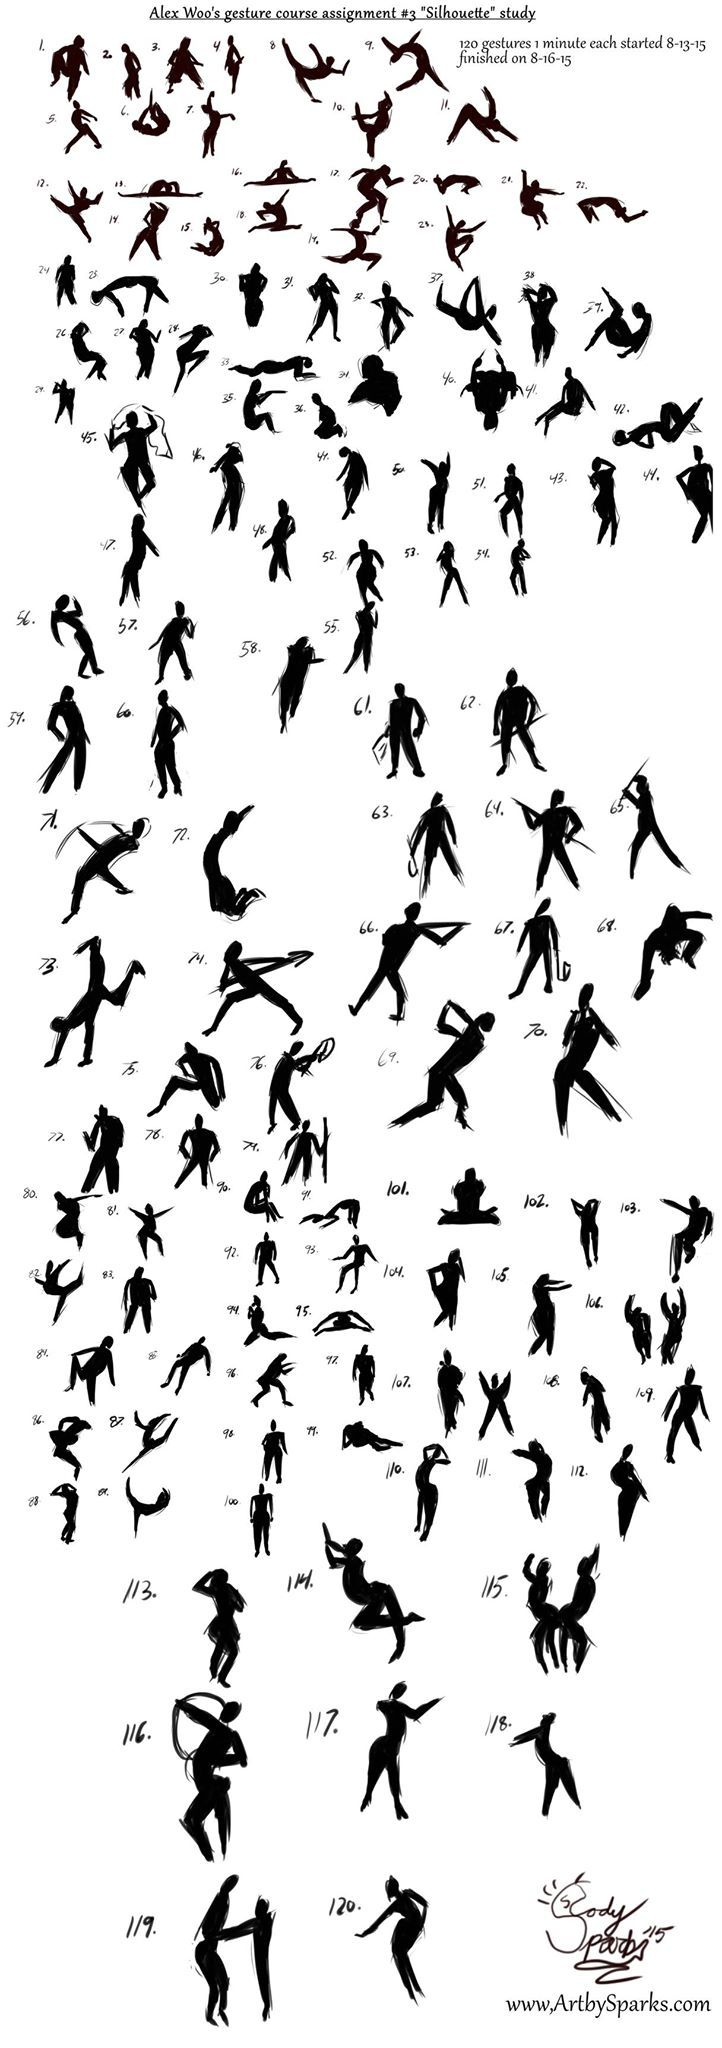 Finally finished my 2 hours worth of gesture silhouette studies for Schoolism. 120 of them for your viewing pleasure!